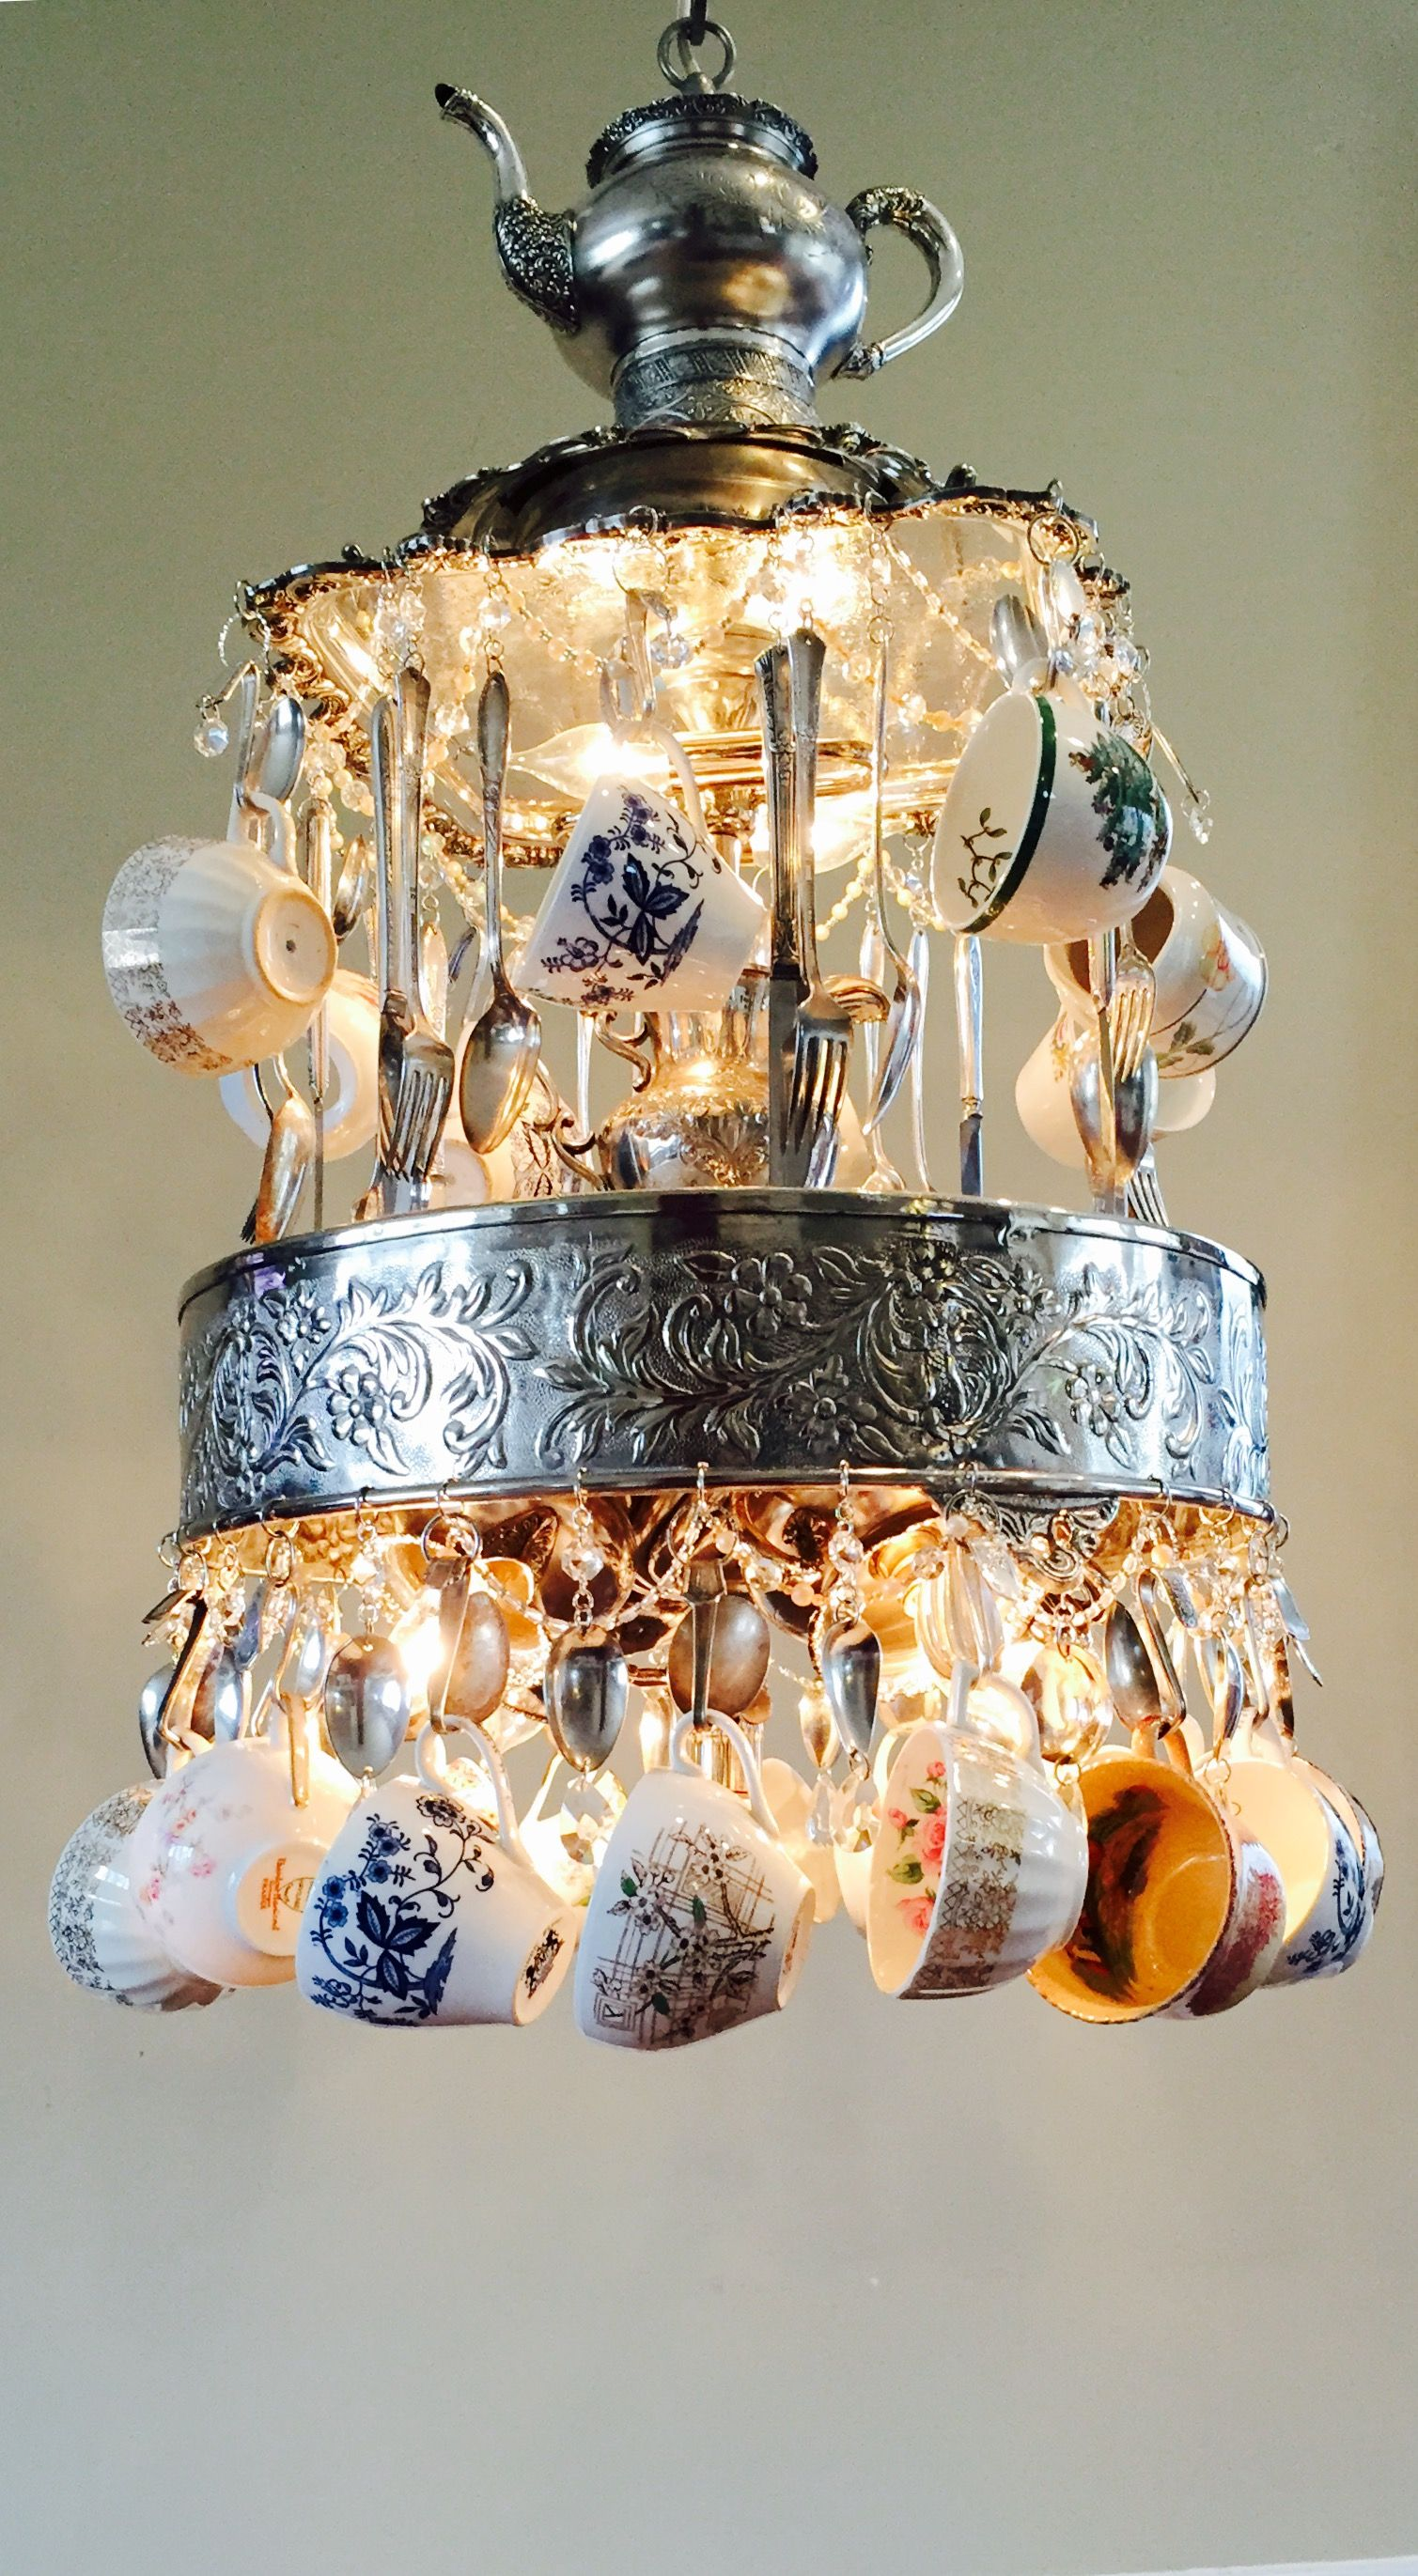 This is crazy see the light pinterest chandeliers lights and cant wait to install this custom vintage teacup silverware and silver teapot chandelier in our kitchen had it custom made by leigh at lit for a queen arubaitofo Choice Image